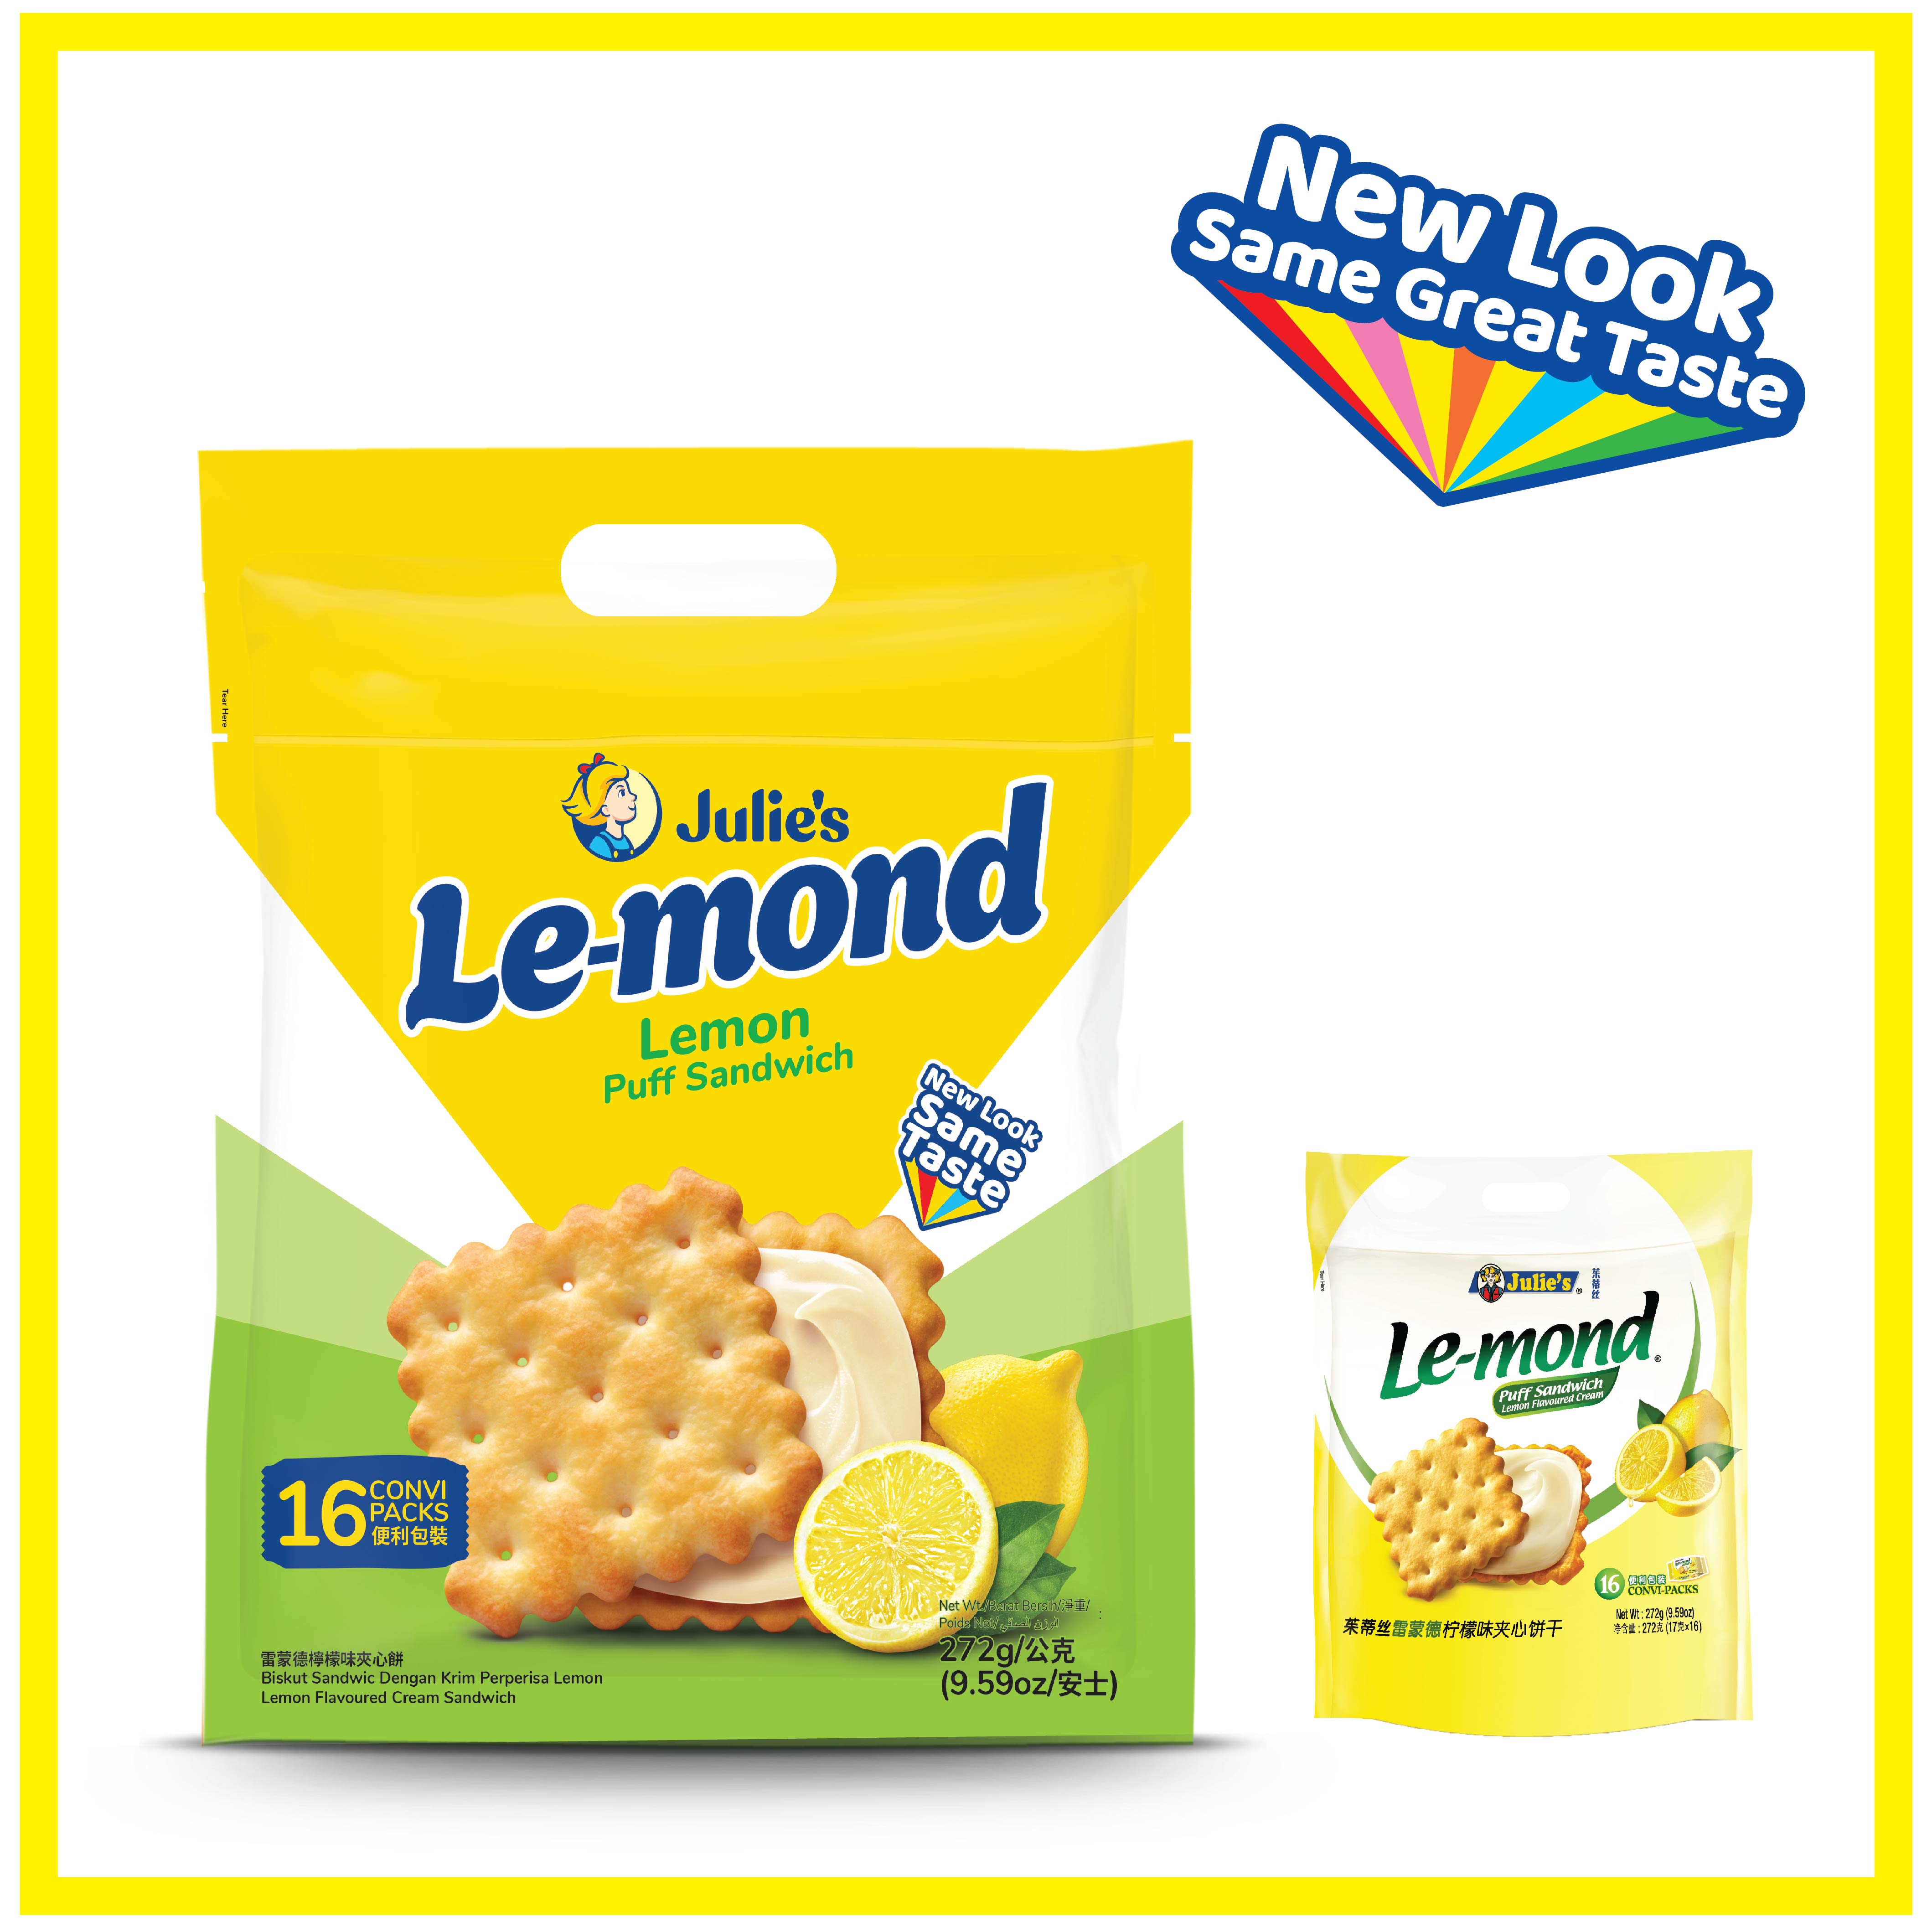 Julies Le-Mond Lemon Cream 272g x 1 pack